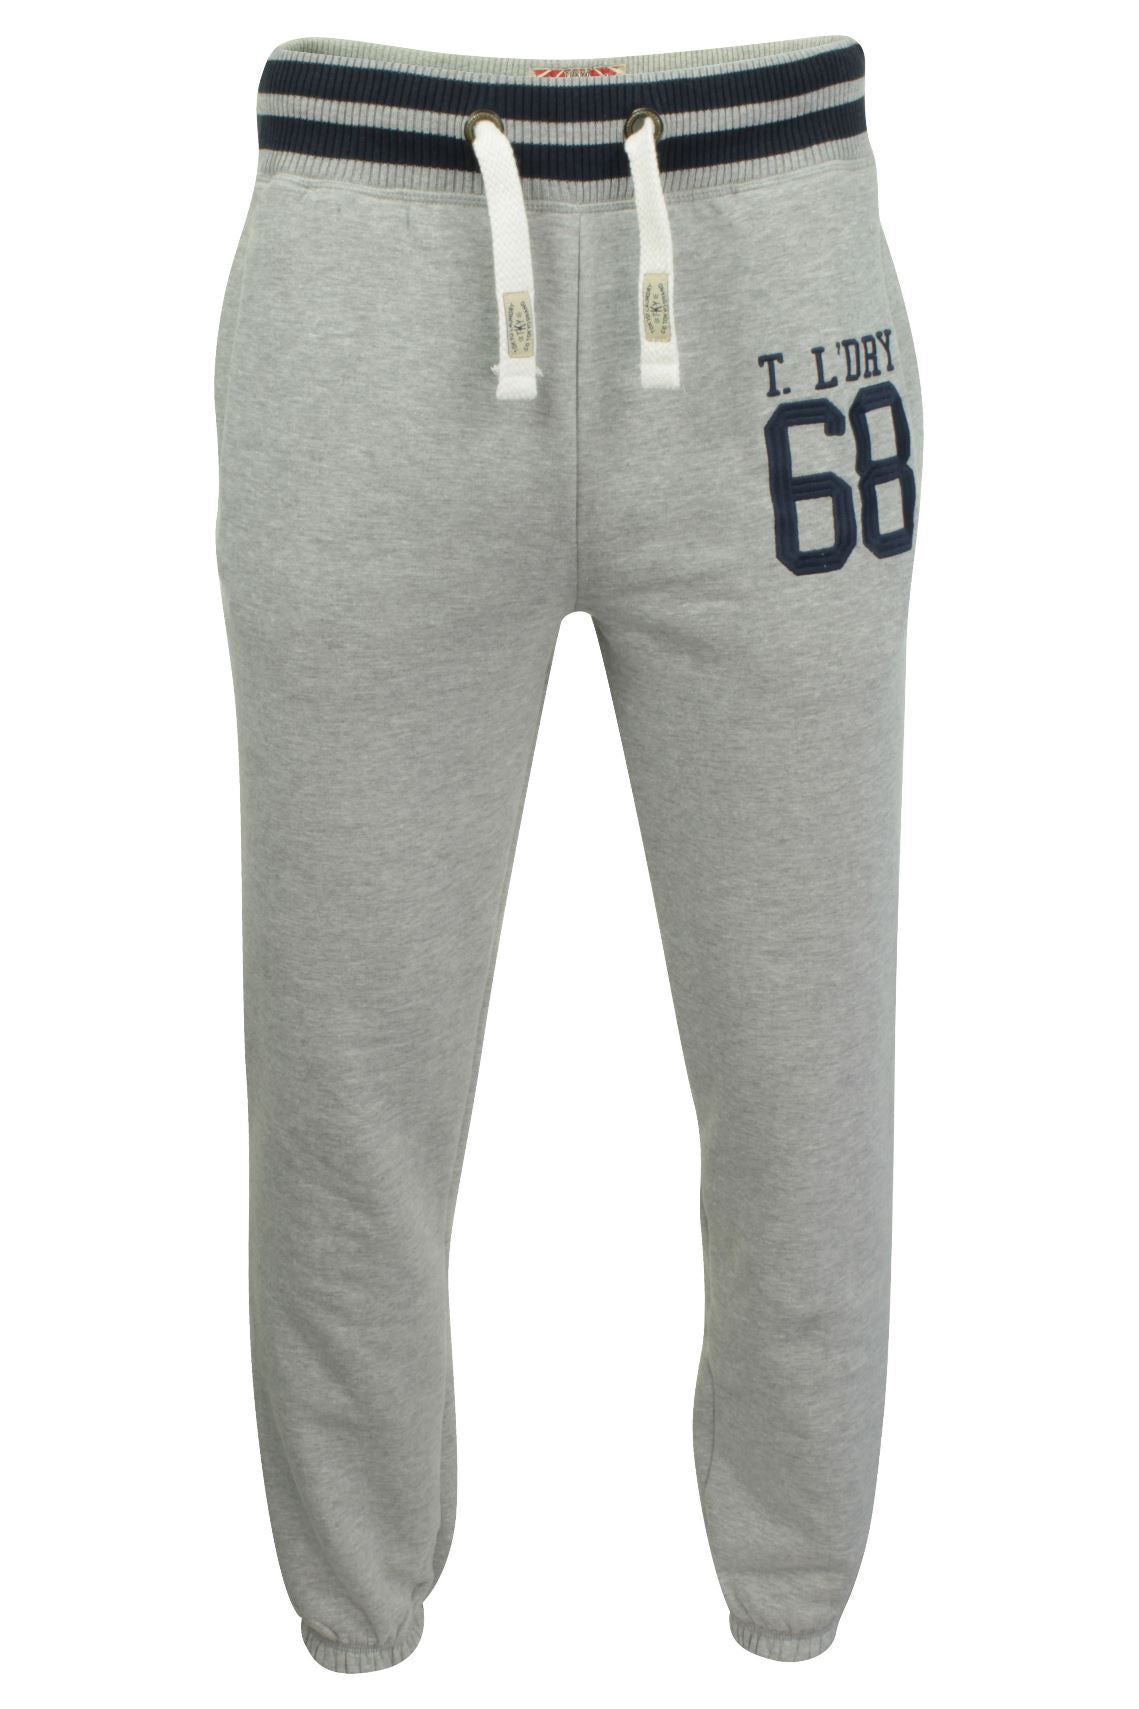 Mens Joggers by Tokyo Laundry 'Finchbrook'-Main Image